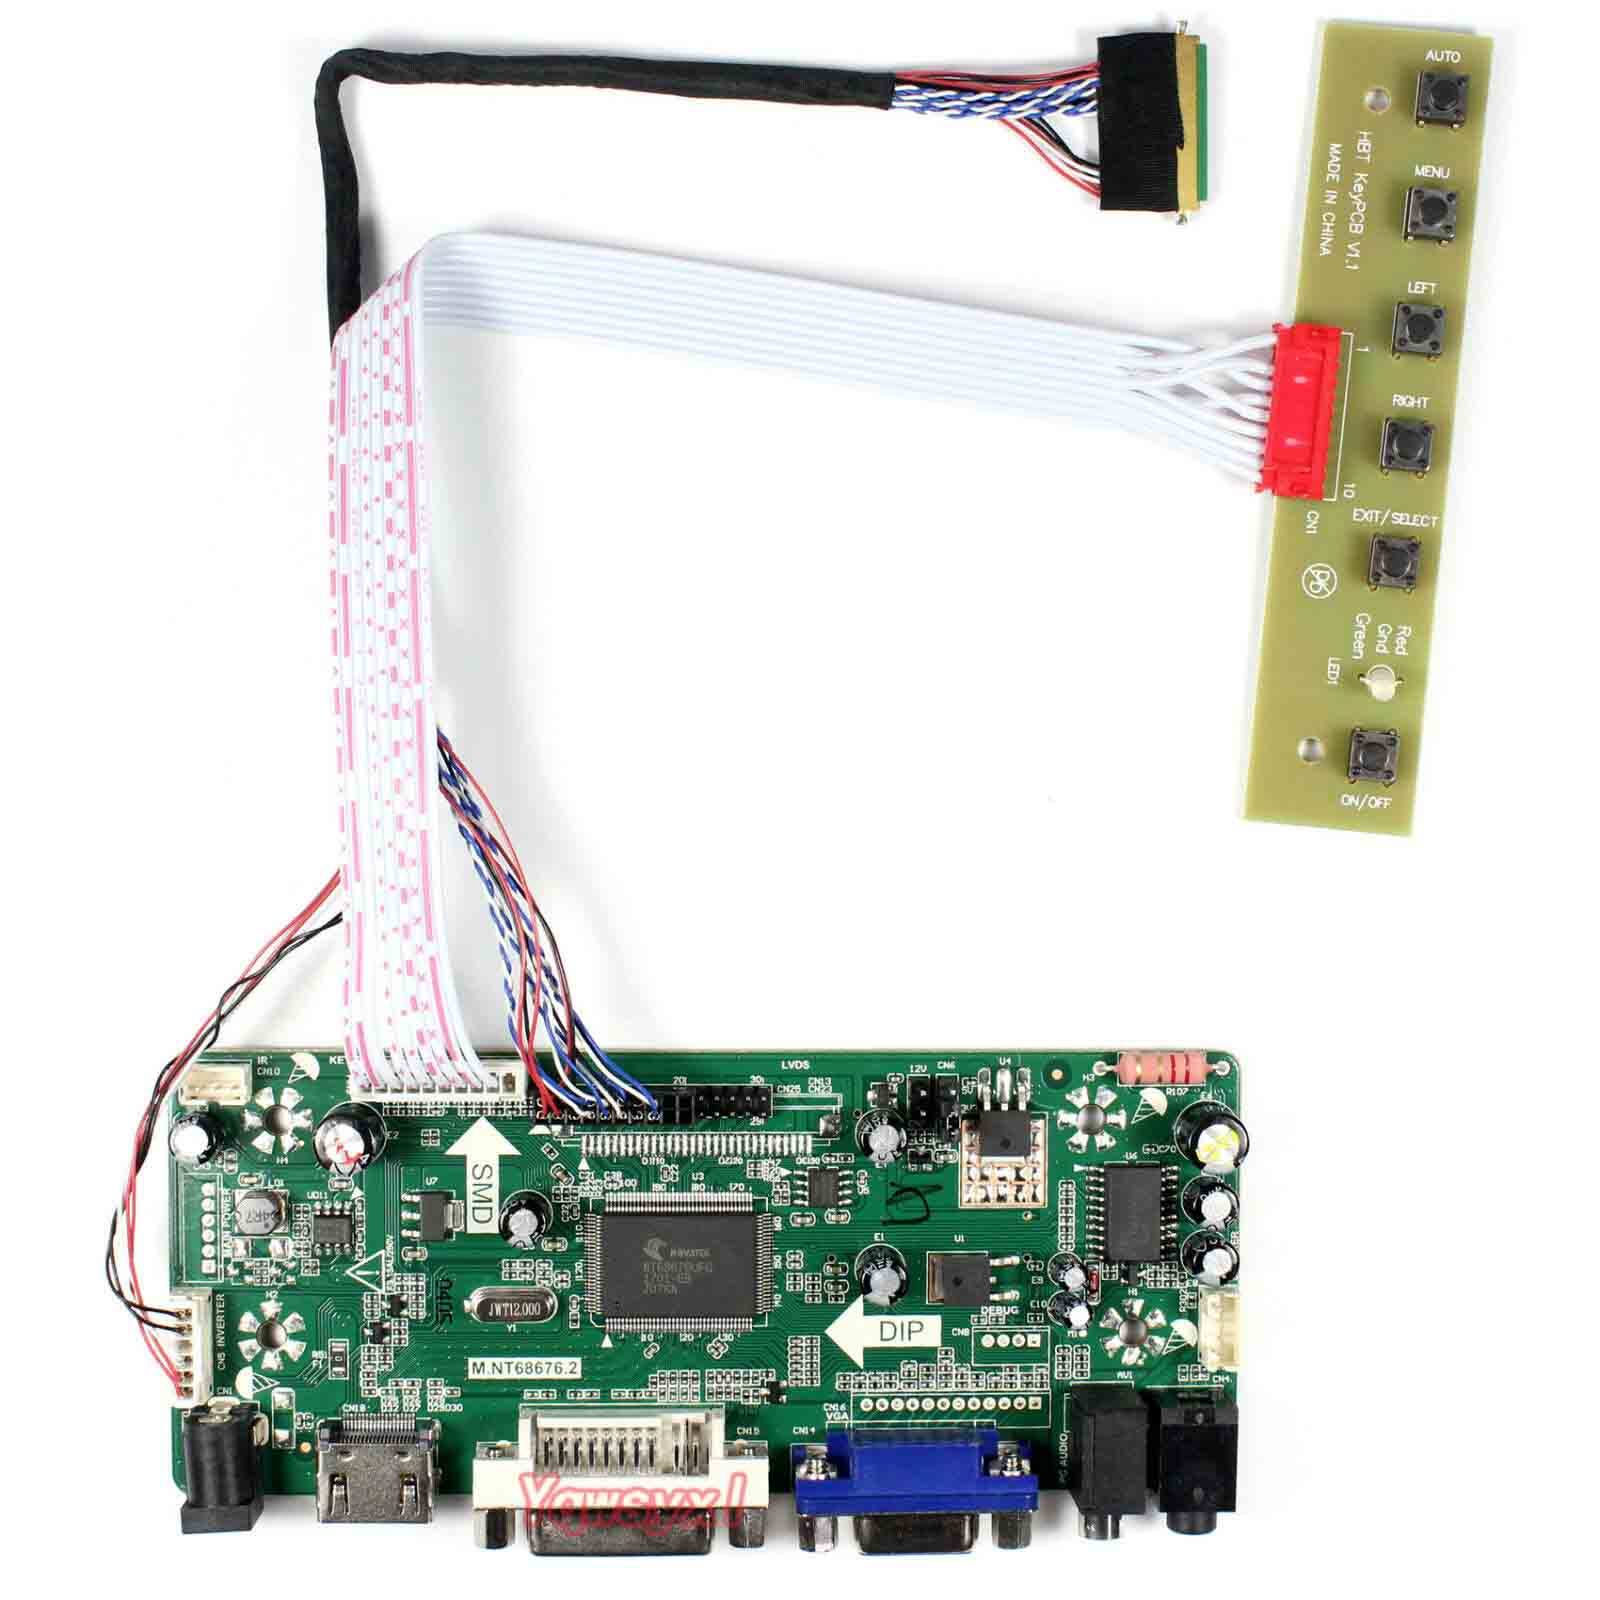 Yqwsyxl HDMI+VGA+DVI+Audio LCD Controller board M.NT68676 for 14inch LTN140AT02 LTN140AT07 HT140WXB HSD141PHW11366x768 lcd panel